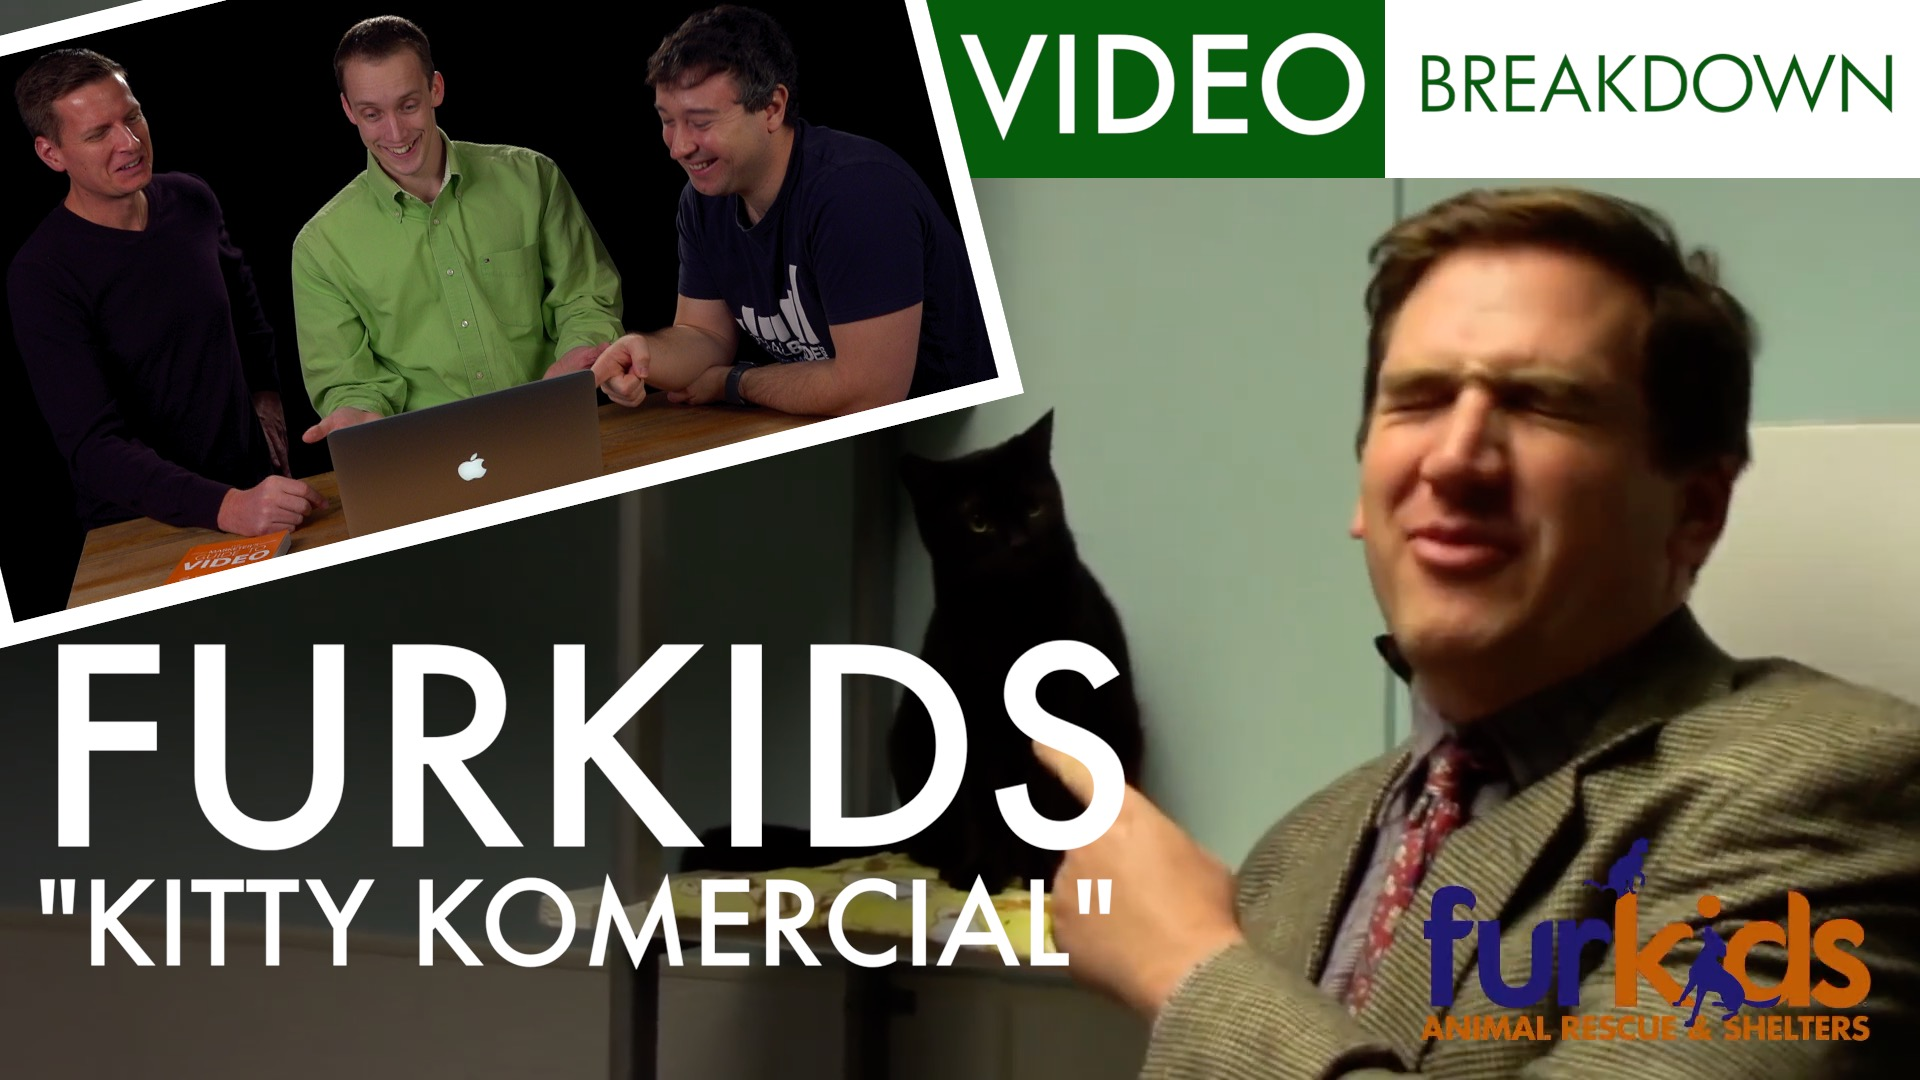 Furkids Kitty Kommercial Video Marketing Breakdown | Ep 3